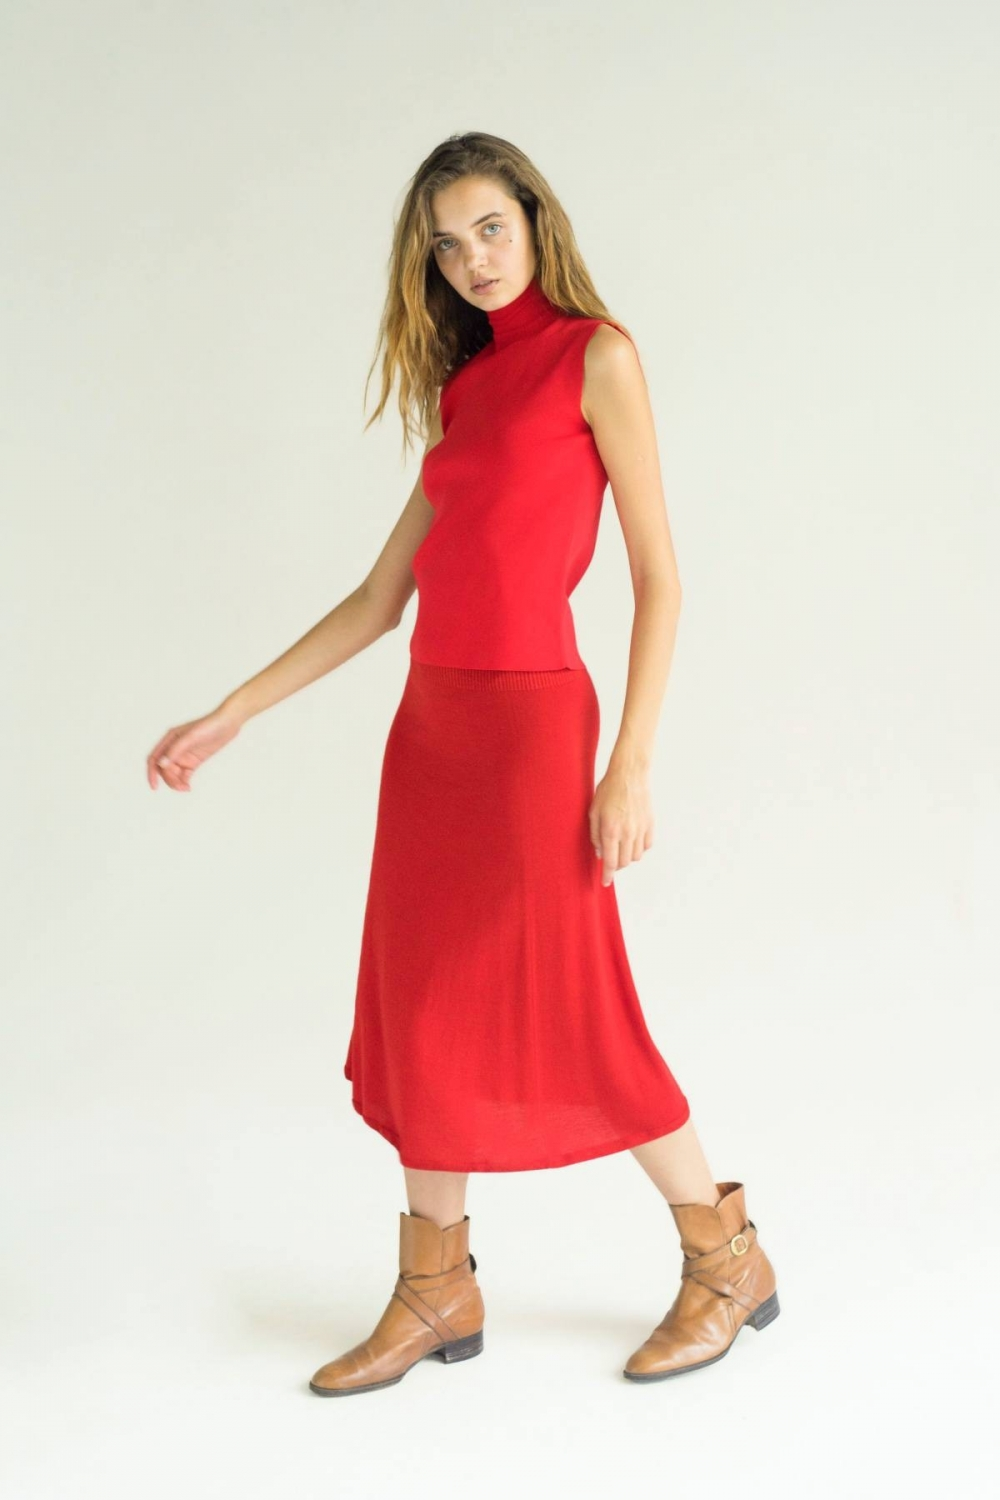 EXTRAFINE MERINO SKIRT IN RED